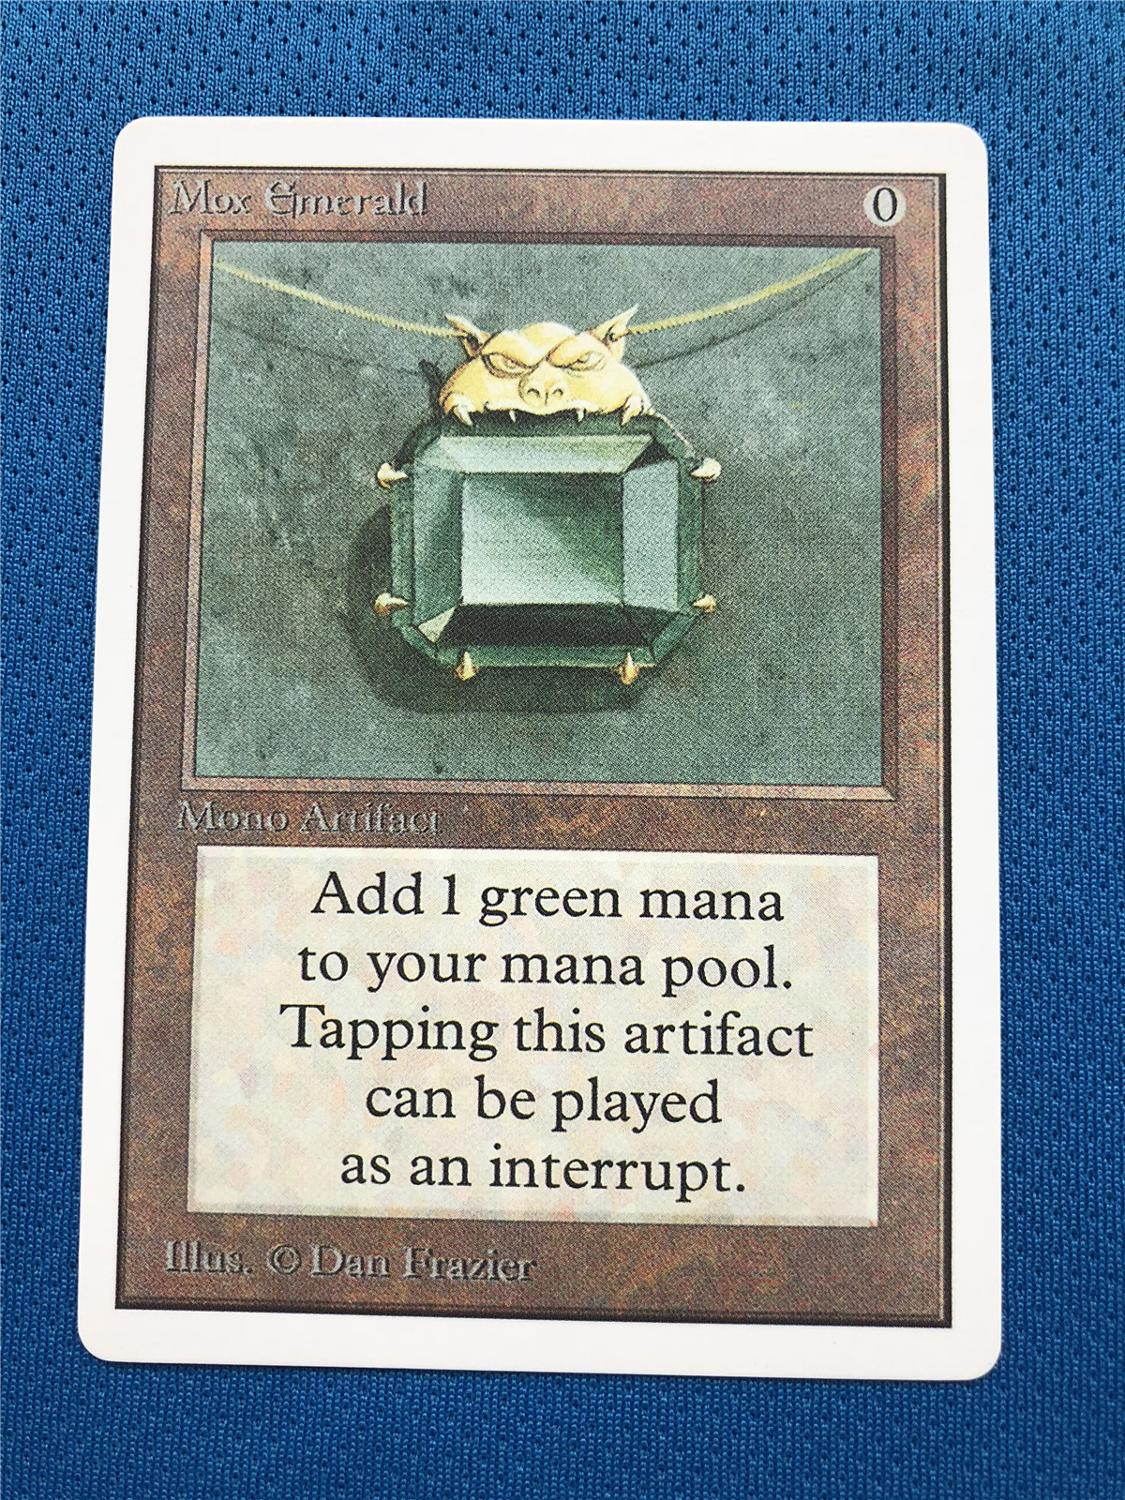 Mox Emerald Unlimited Magician ProxyKing 8.0 VIP The Proxy Cards To Gathering Every Single Mg Card.